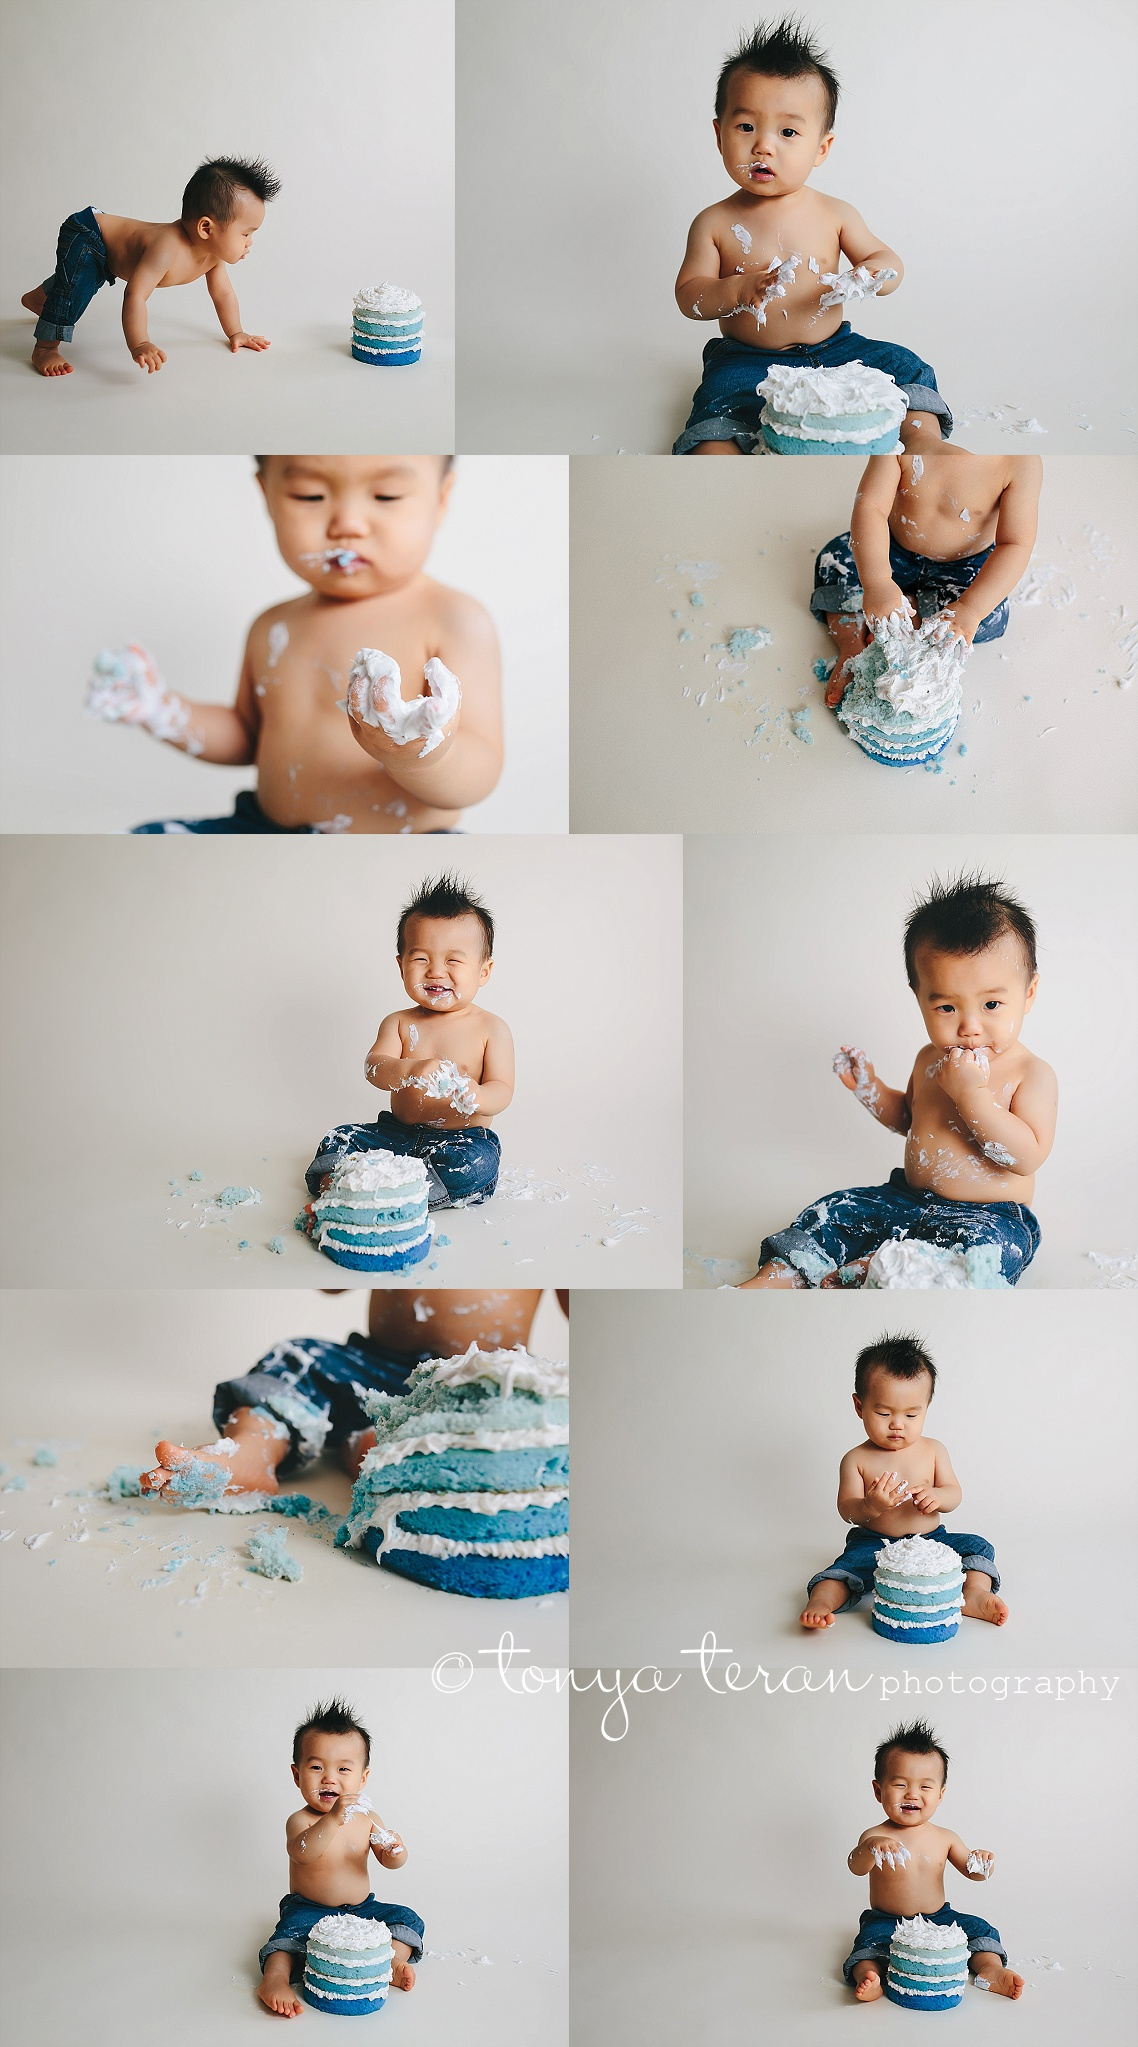 1st Birthday Cake Smash Photo Session | Tonya Teran Photography, Rockville, MD Newborn, Baby, and Family Photographer